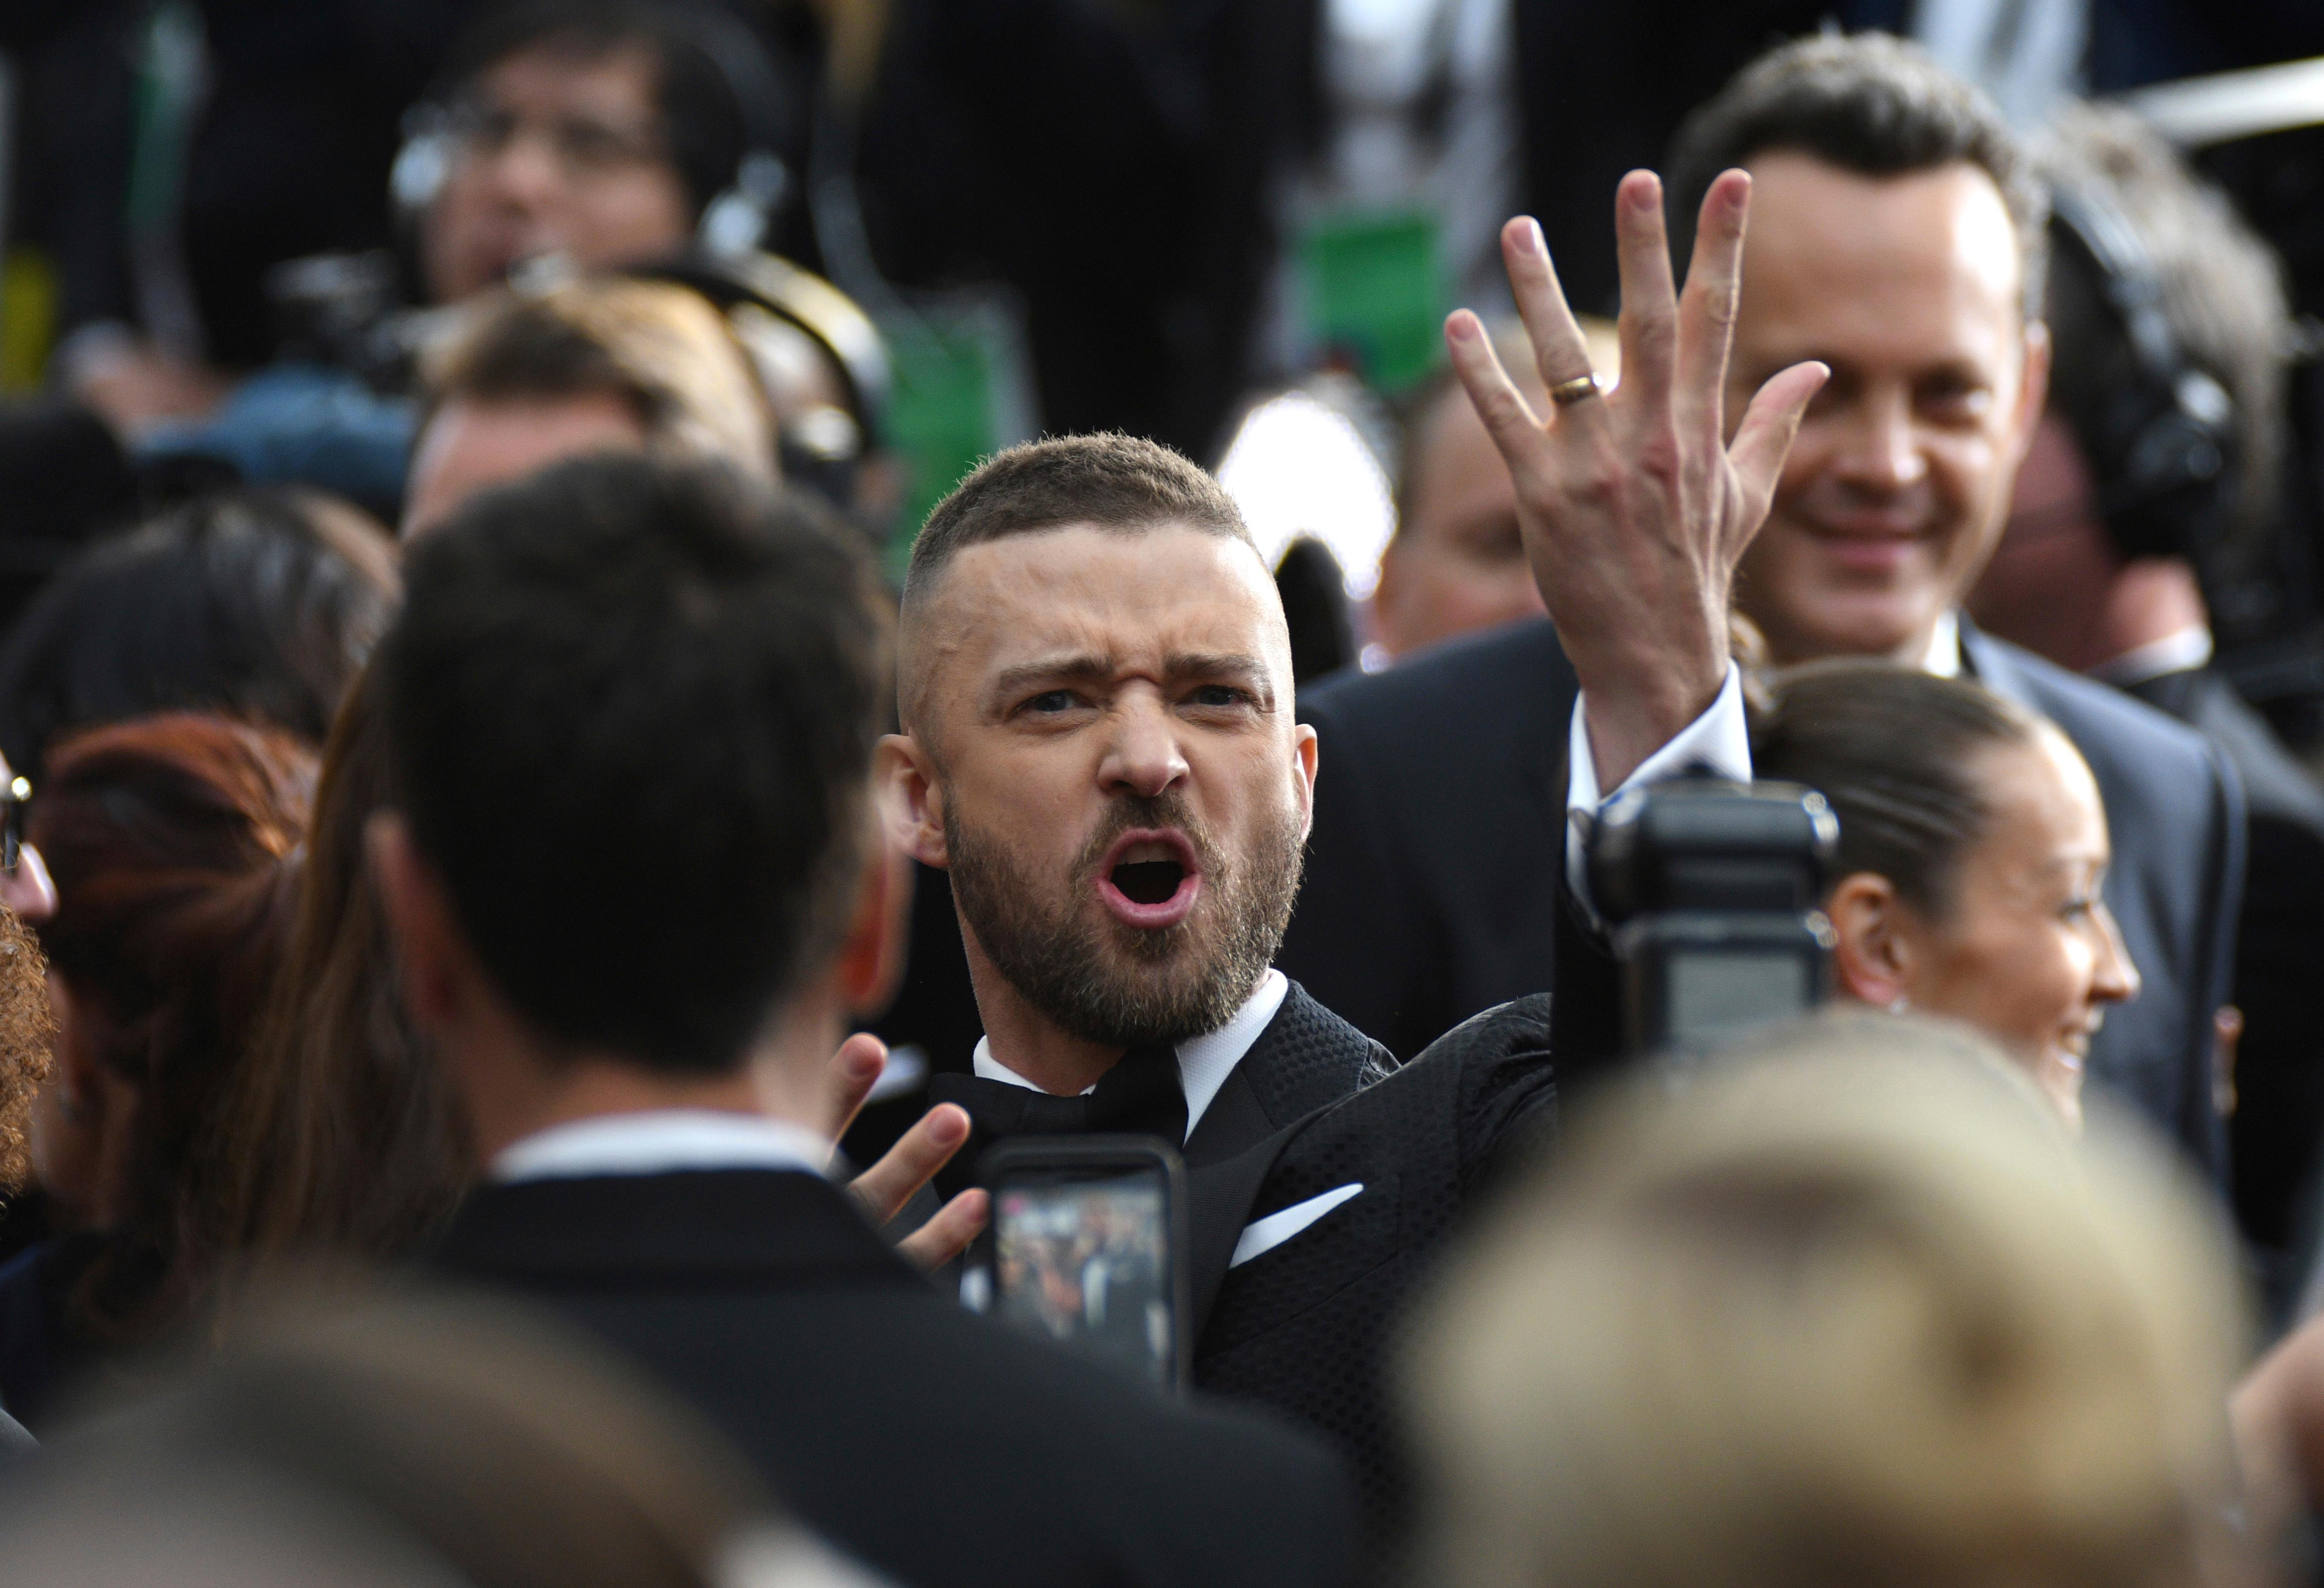 Justin Timberlake arrives at the Oscars on Sunday, Feb. 26, 2017, at the Dolby Theatre in Los Angeles. (Photo by Al Powers/Invision/AP)